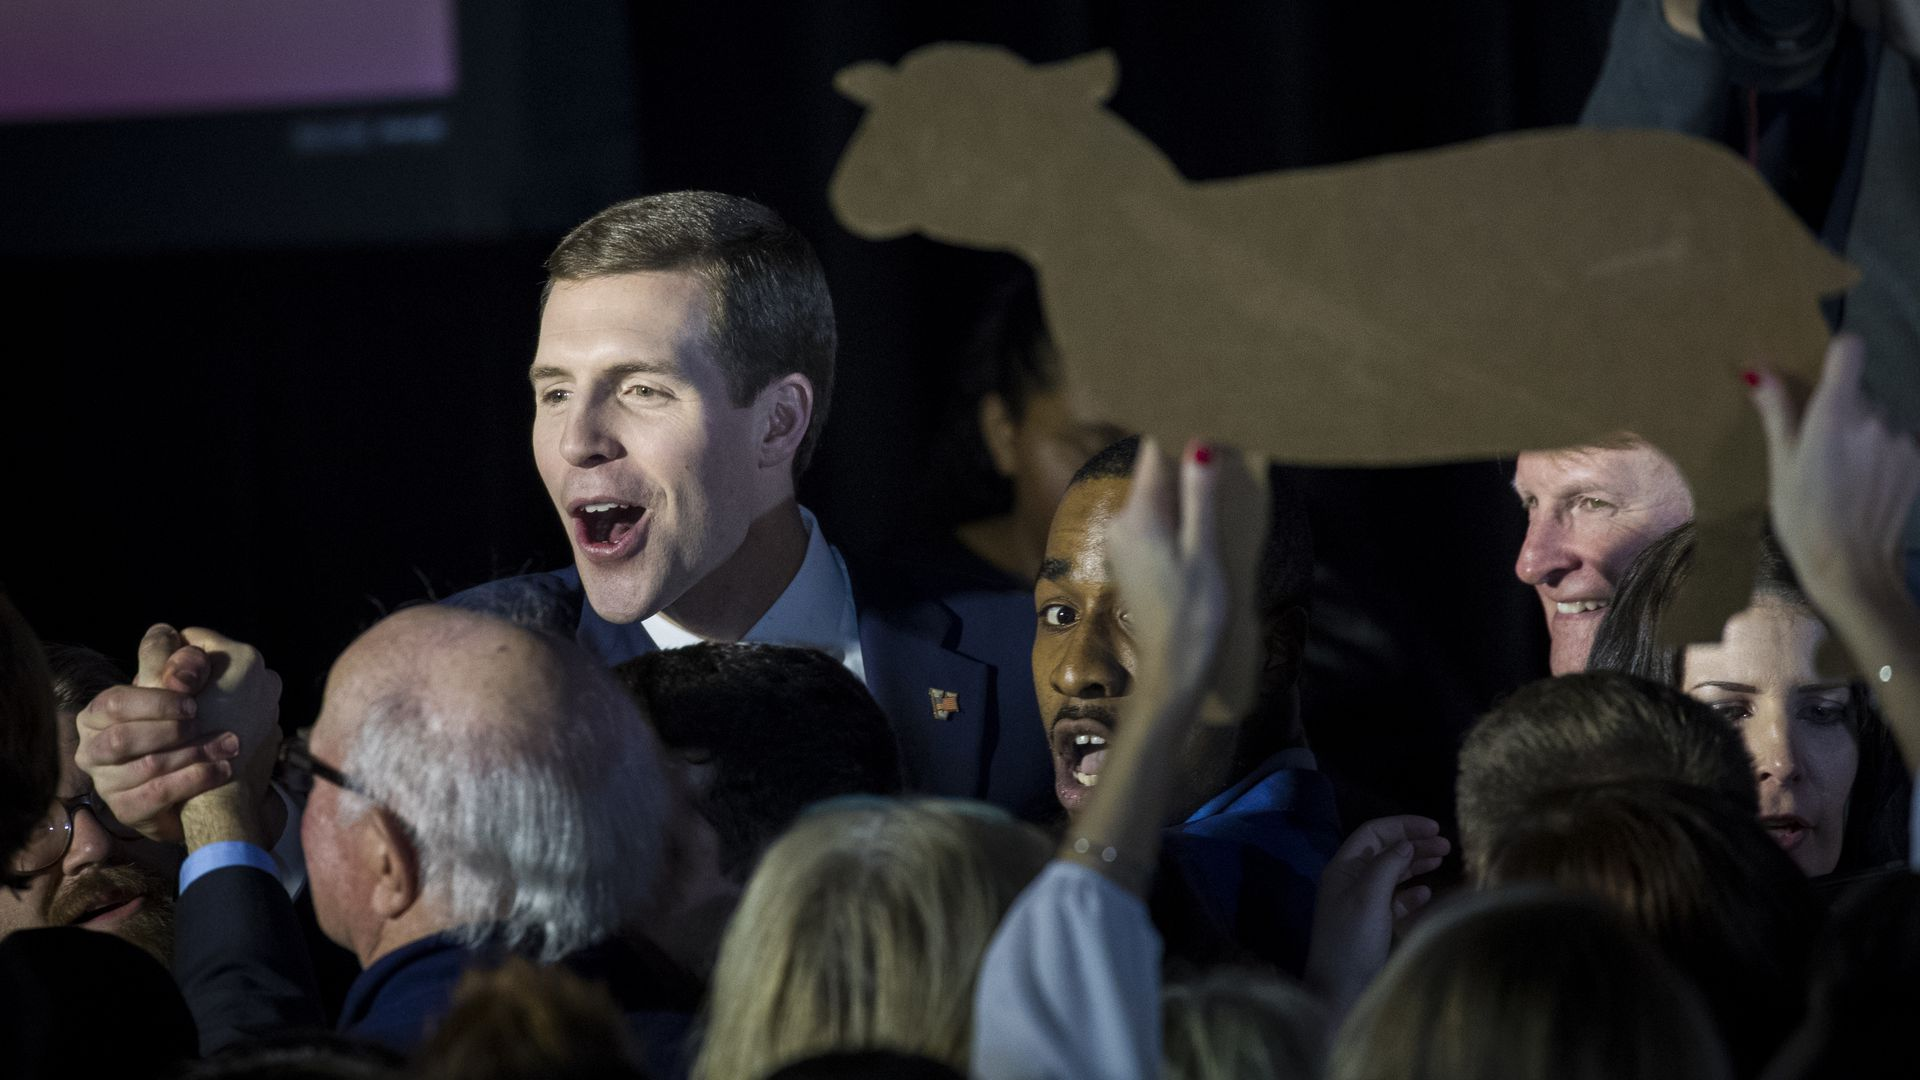 Conor Lamb election night party